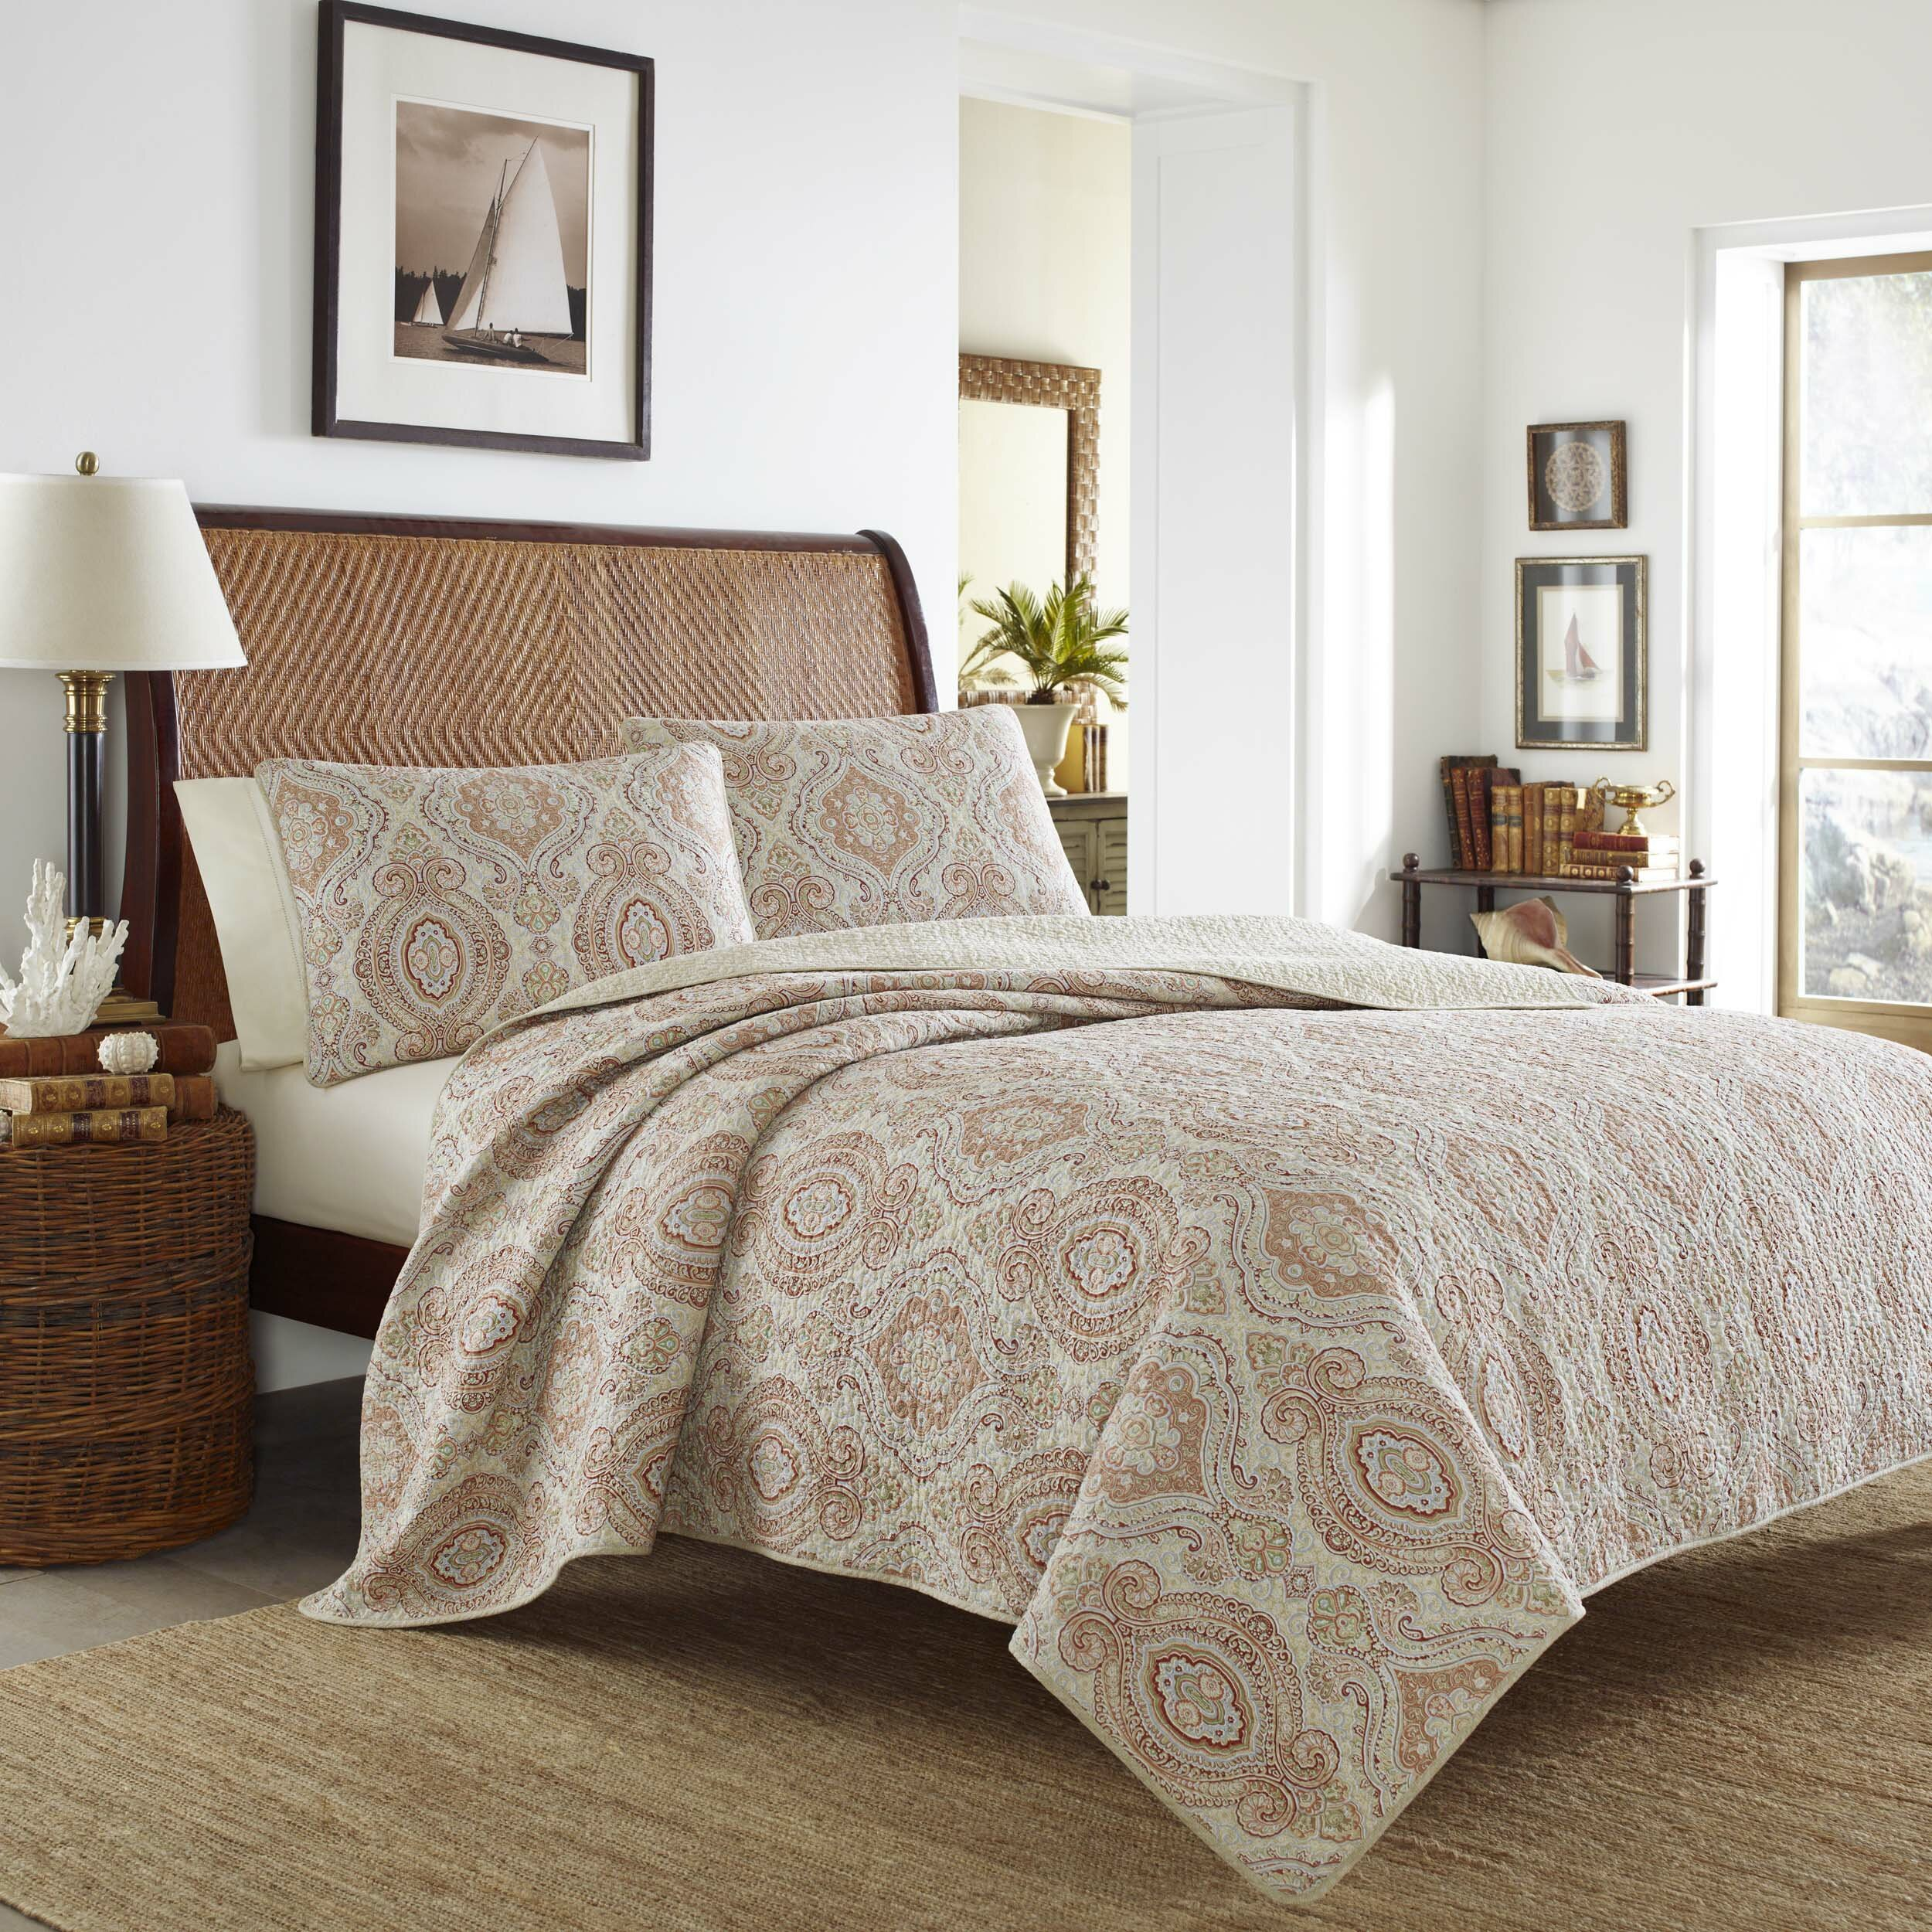 Tommy Bahama Bedding Turtle Cove Reversible Quilt Set